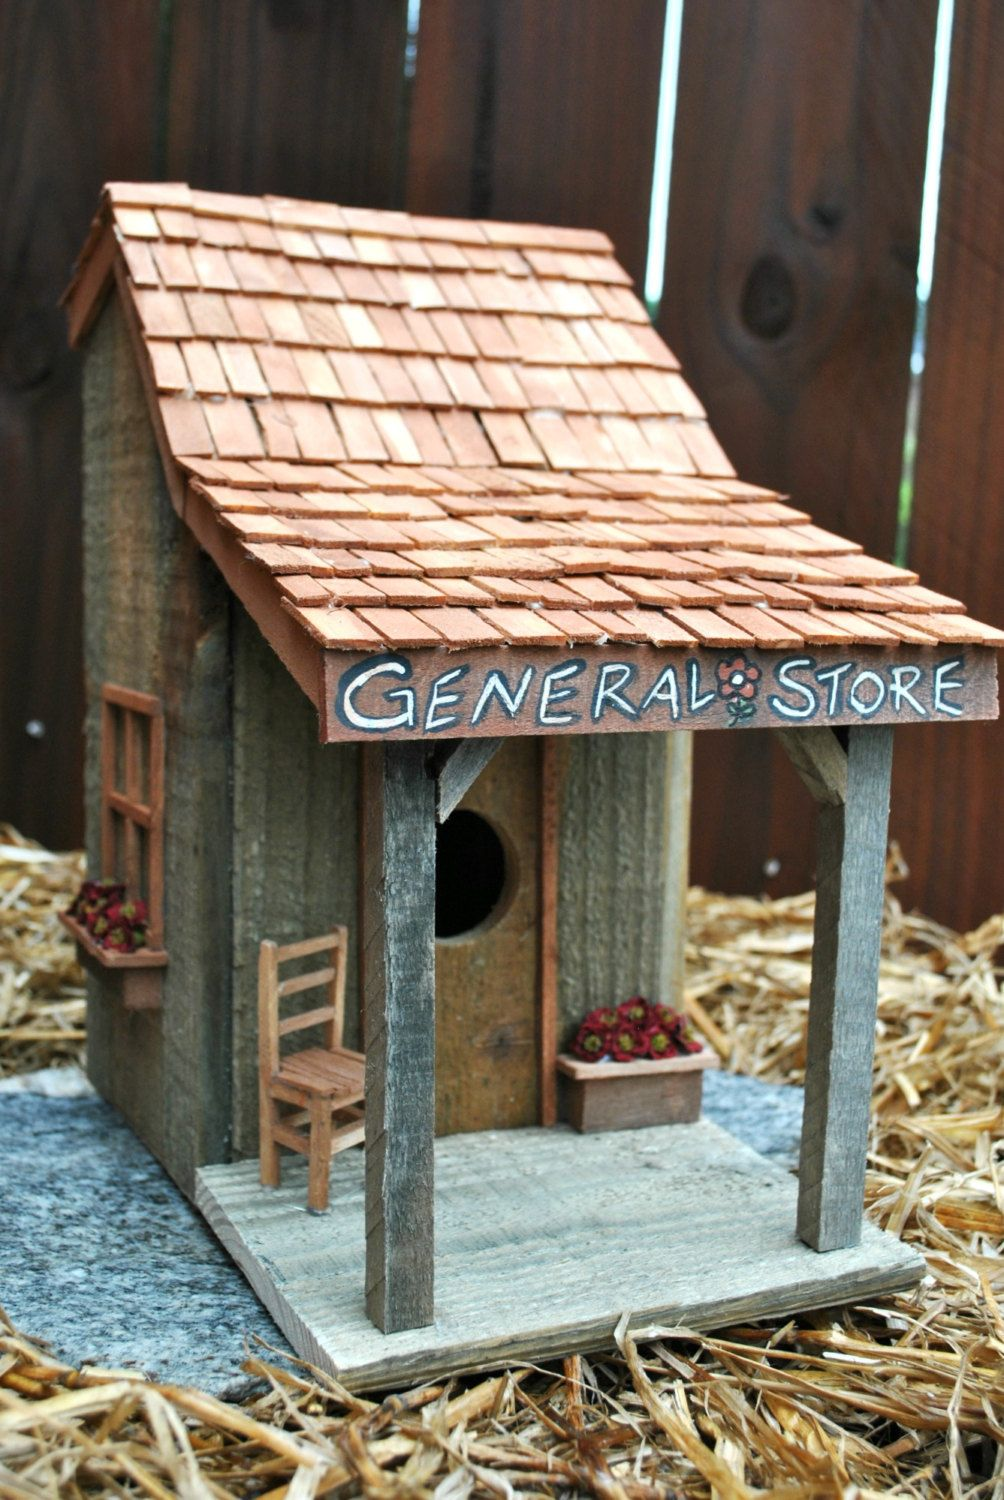 Surprising Birdhouse Collection General Store By Rdenterprises On Interior Design Ideas Tzicisoteloinfo